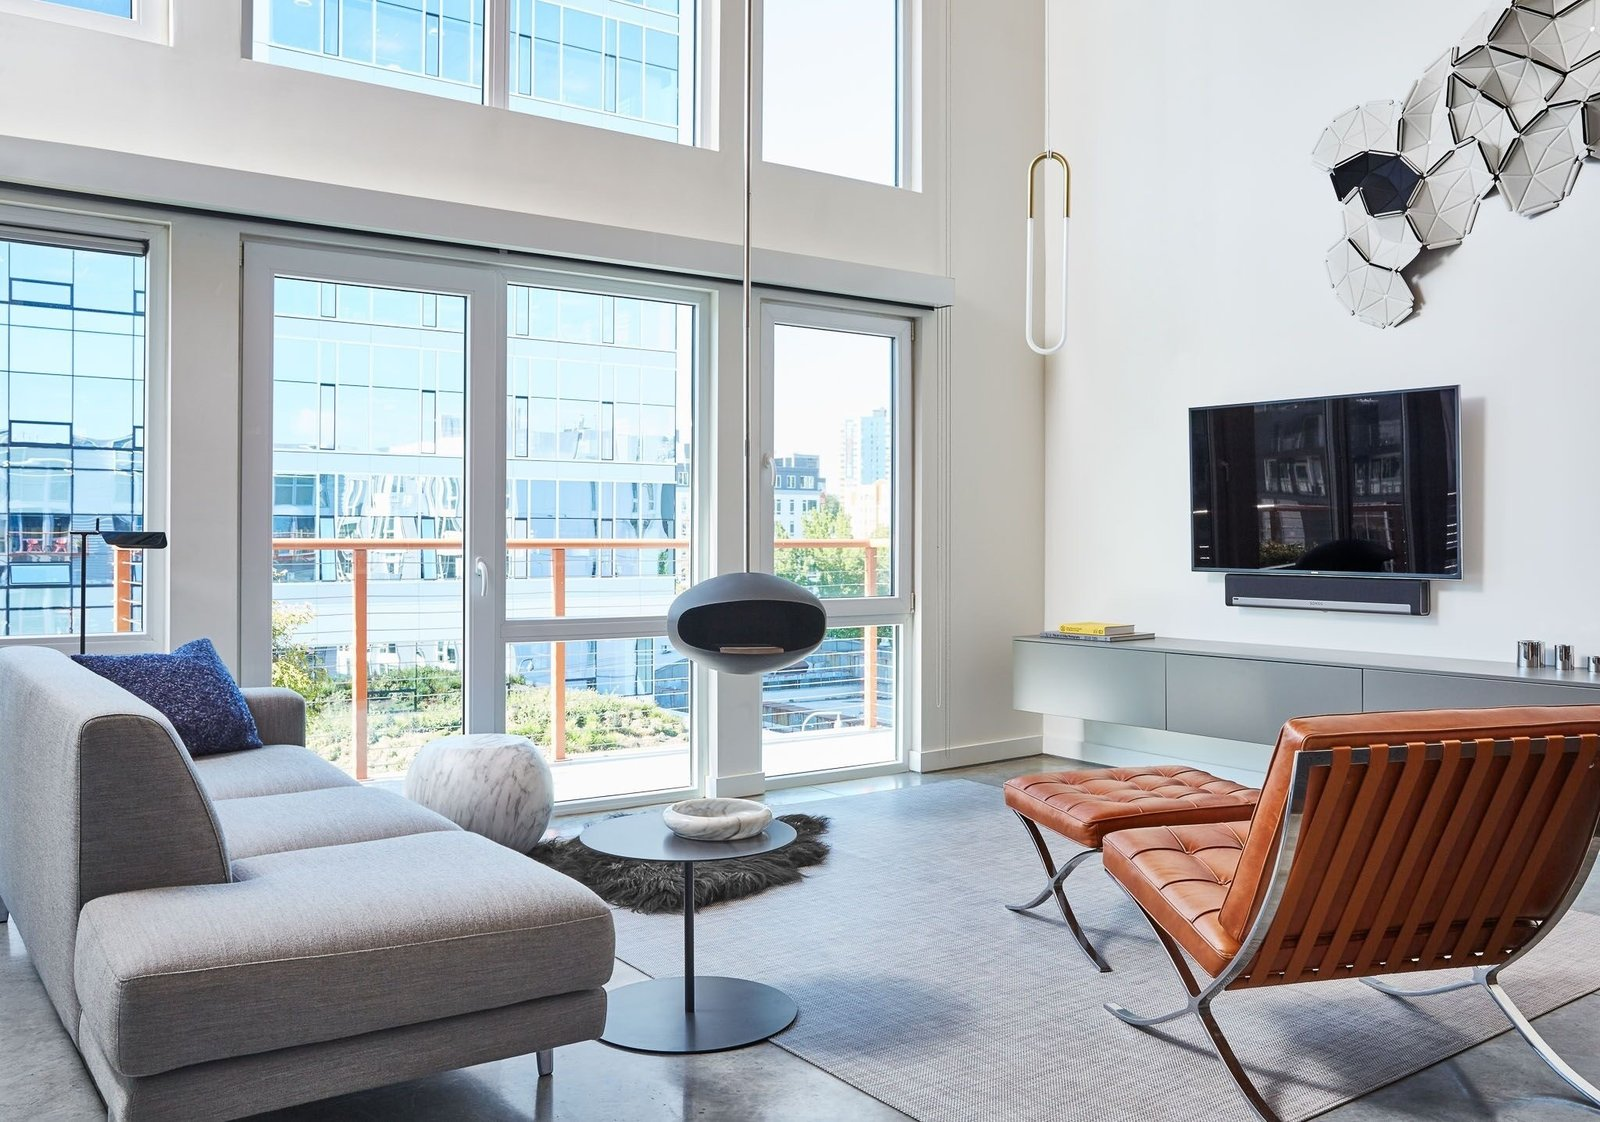 Living Room, Hanging Fireplace, Sofa, Chair, and Concrete Floor  South Lake Union Loft by J+STUDIO